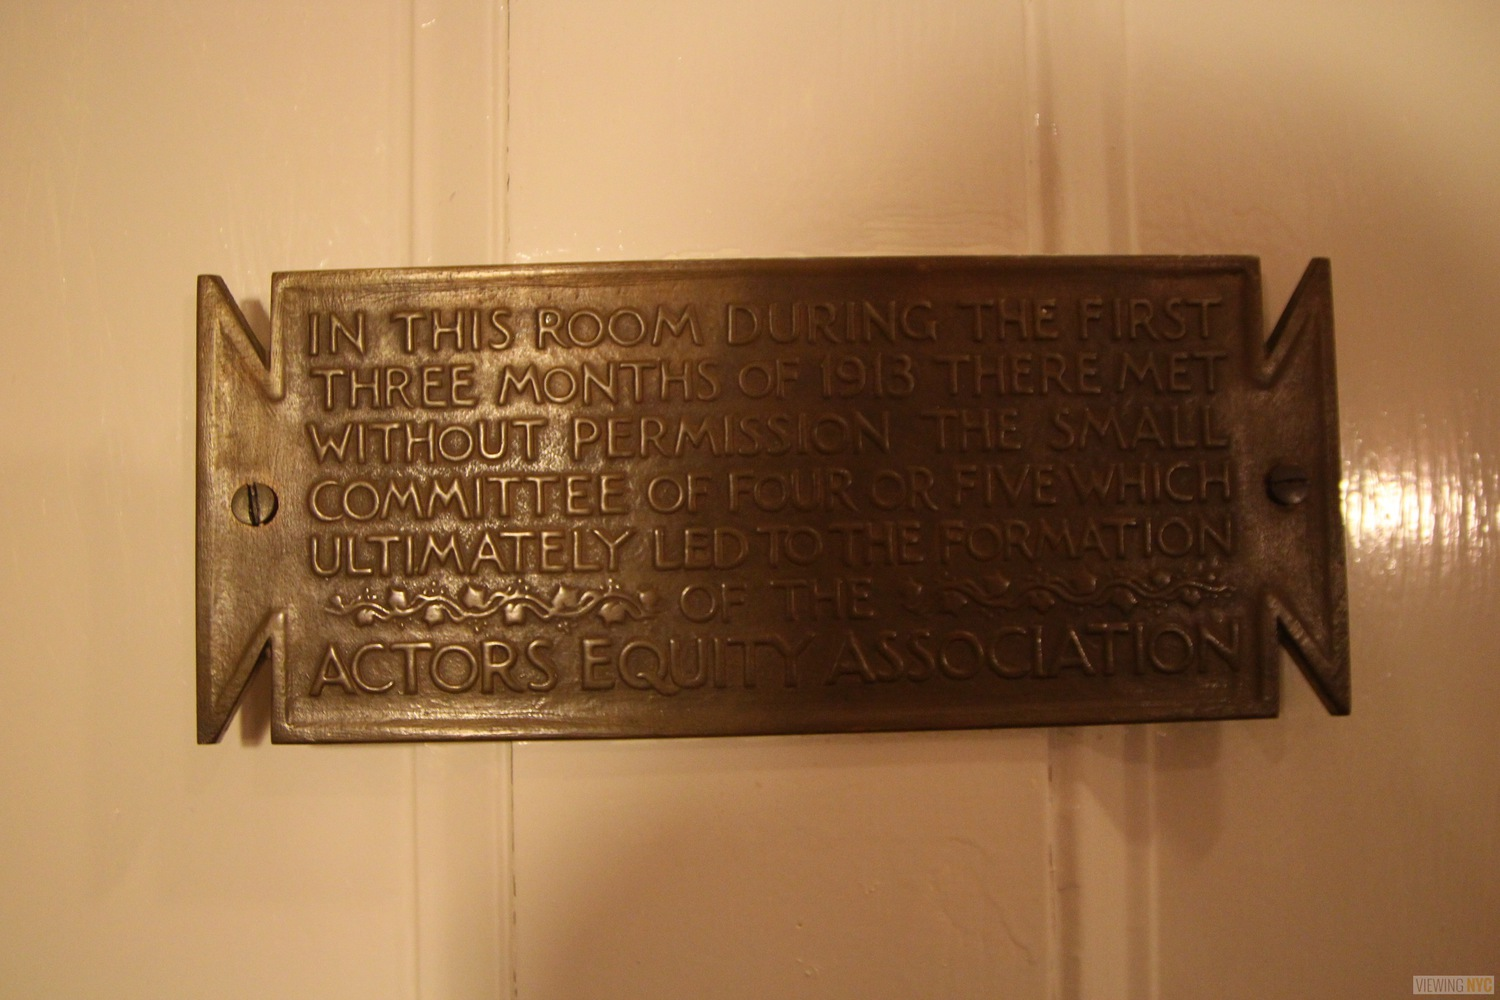 Actor's Equity Association Founding Plaque